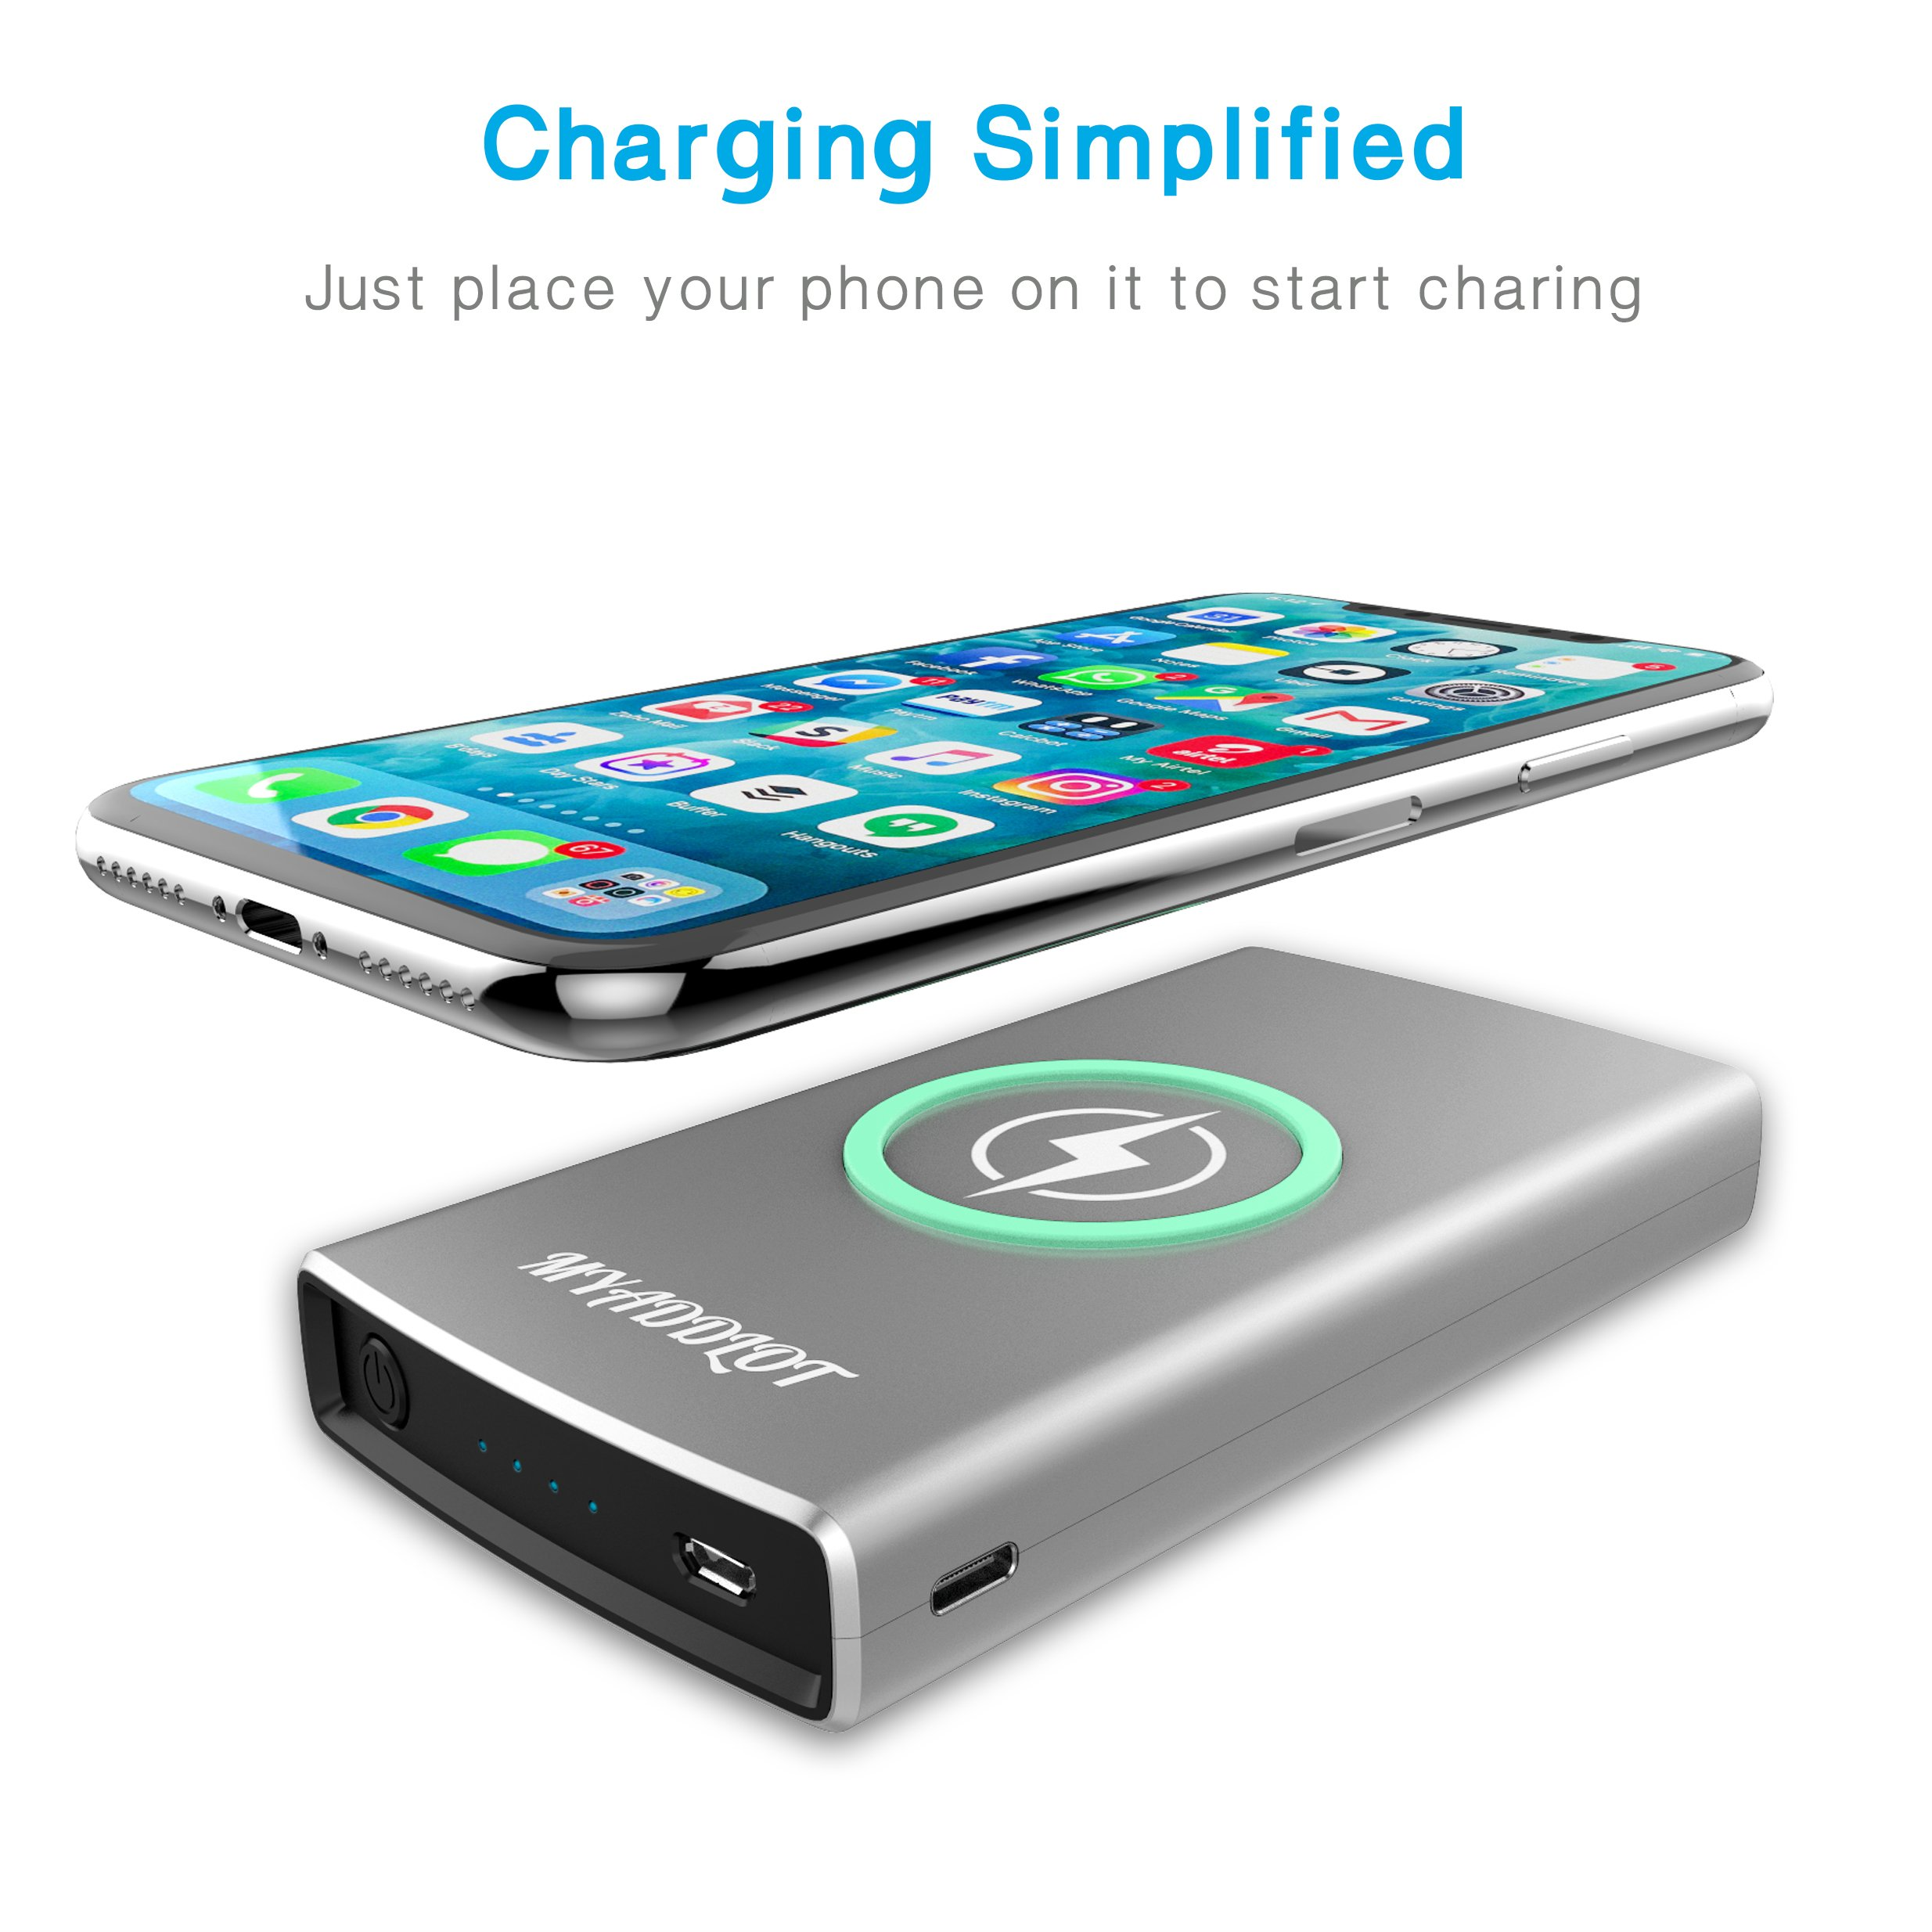 Wireless Charger Power Bank REAL 10000mAh External Battery Wireless Charging Station for iPhone X / 8 / 8 Plus Galaxy S9 / S9+ / S8 / S7 / Note 8 and Other Qi-Enabled Phones by Myaddlot(Sliver)